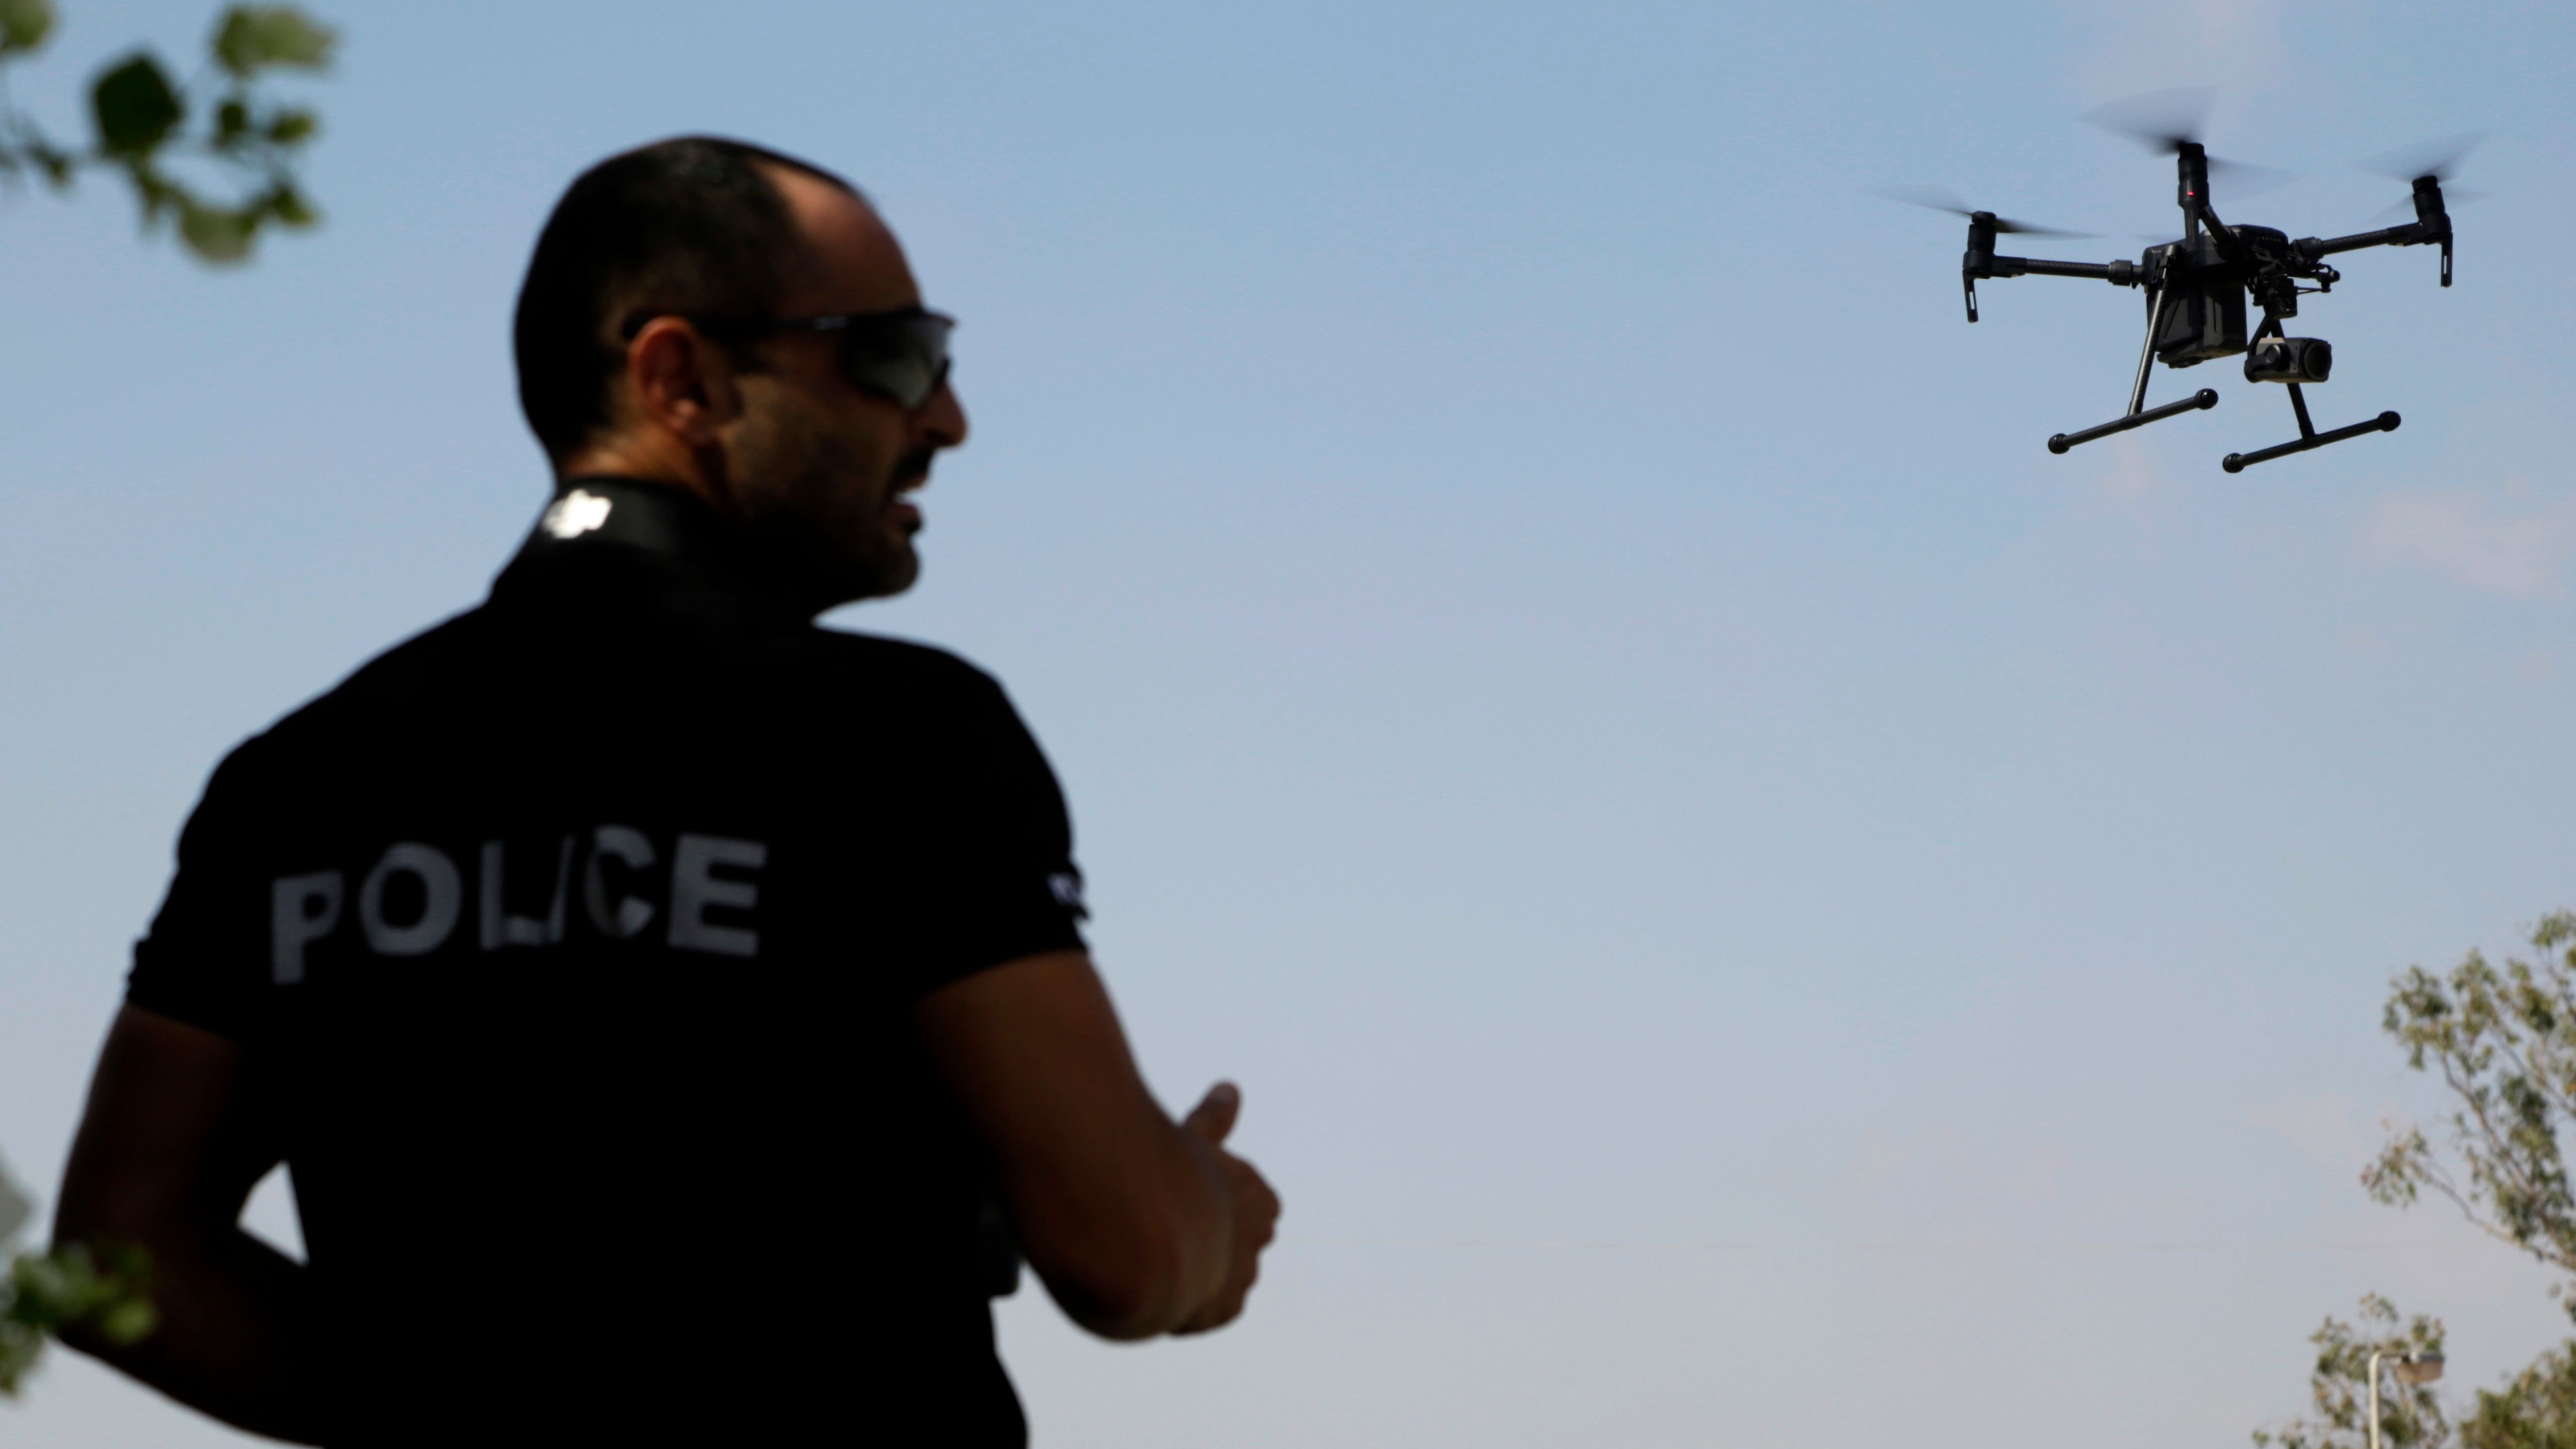 A police officer of SBA controls a drone during a demonstration at the British police station inside the British military base in Dhekelia in southeast of the island of Cyprus, Thursday, Sept. 21, 2017. Police at Britain's two military bases on Cyprus say the use of a state-of-the-art drone will greatly boost their ongoing crackdown on the illicit trapping of migratory birds. (AP Photo/Petros Karadjias)